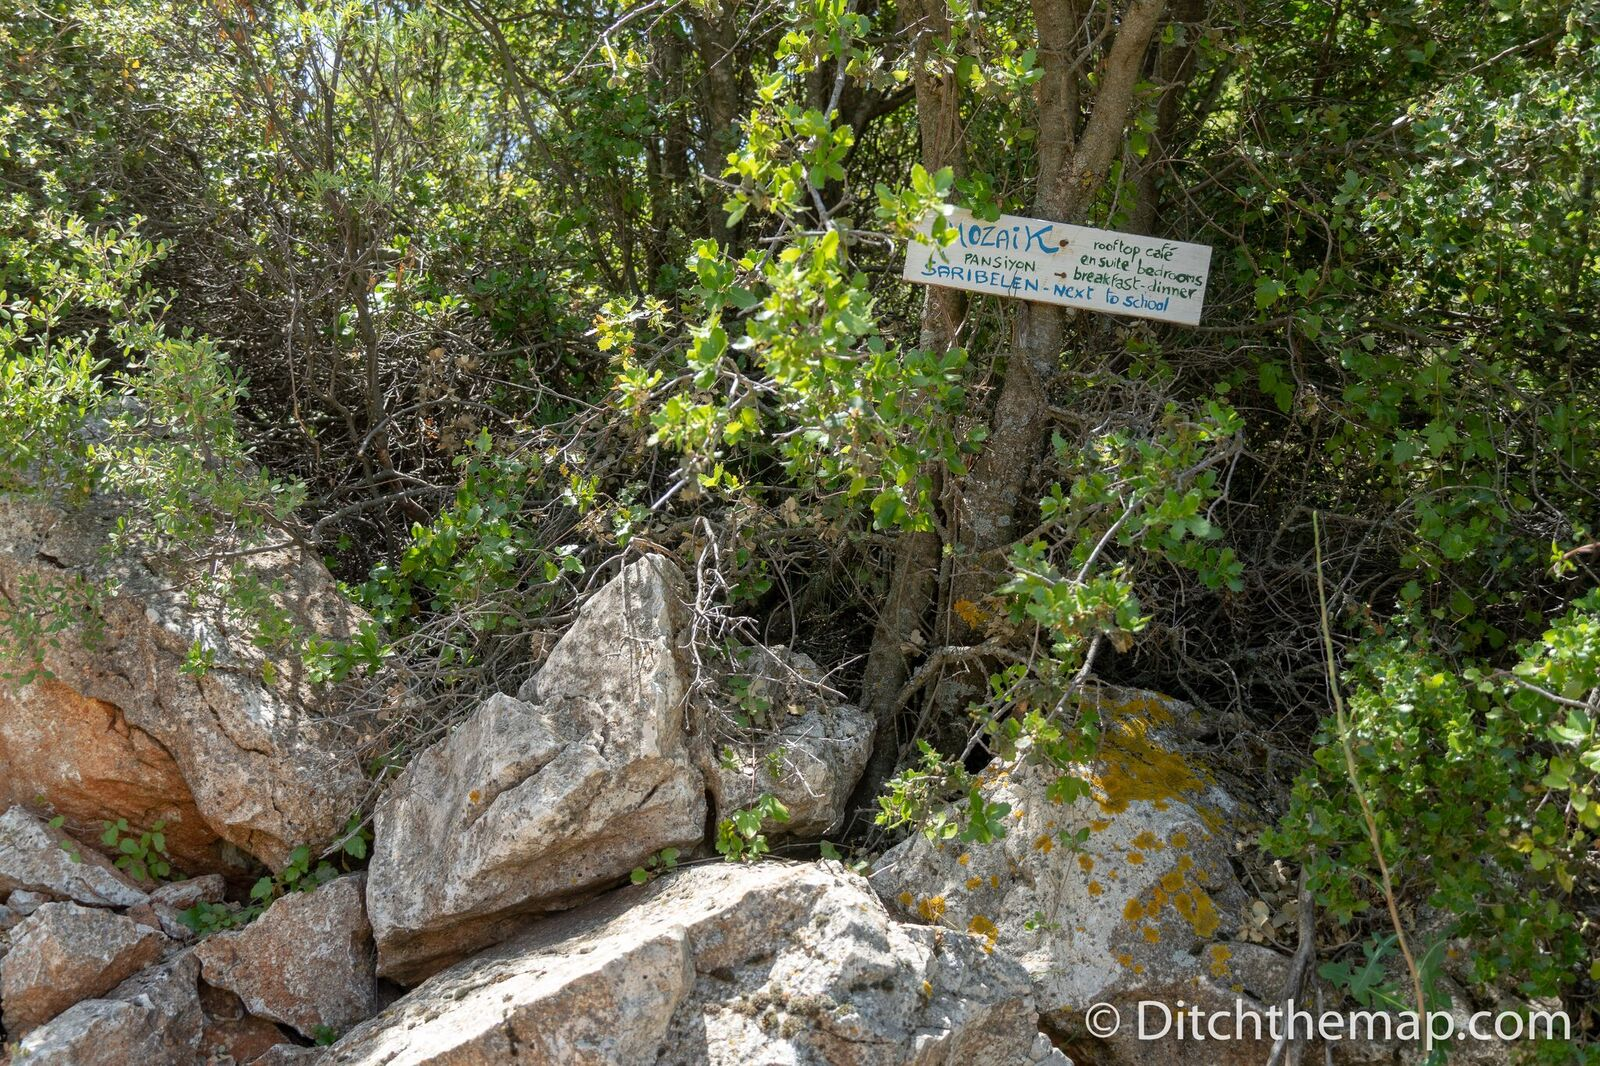 Homemade advertisement for Mosaik Pension in Saribelen on the Lycian Way